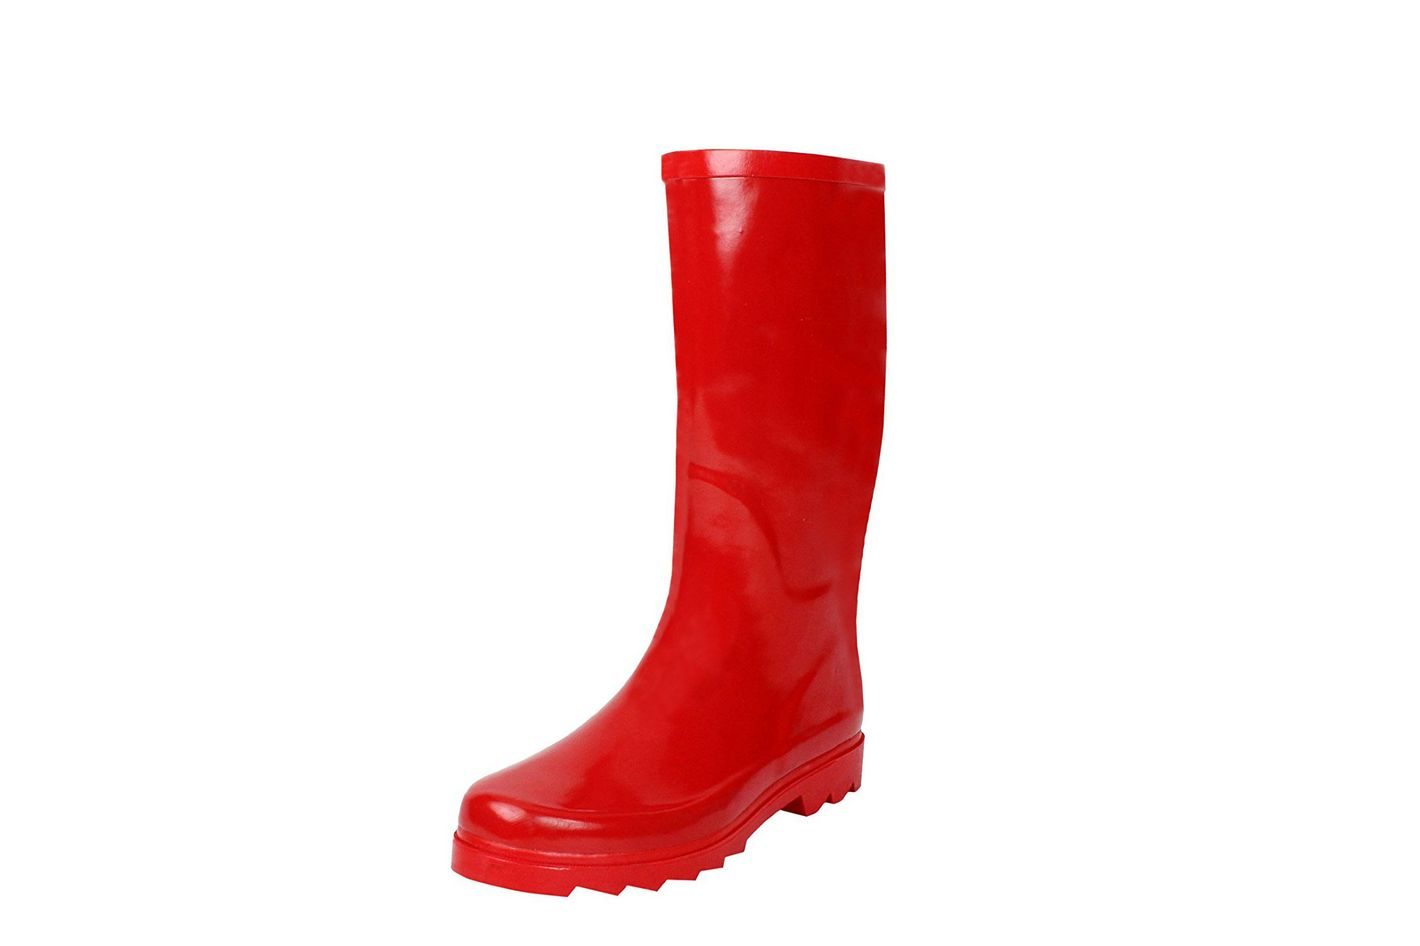 eb6e96e4741d9 West Blvd Women s Mid Calf Waterproof Rainboots